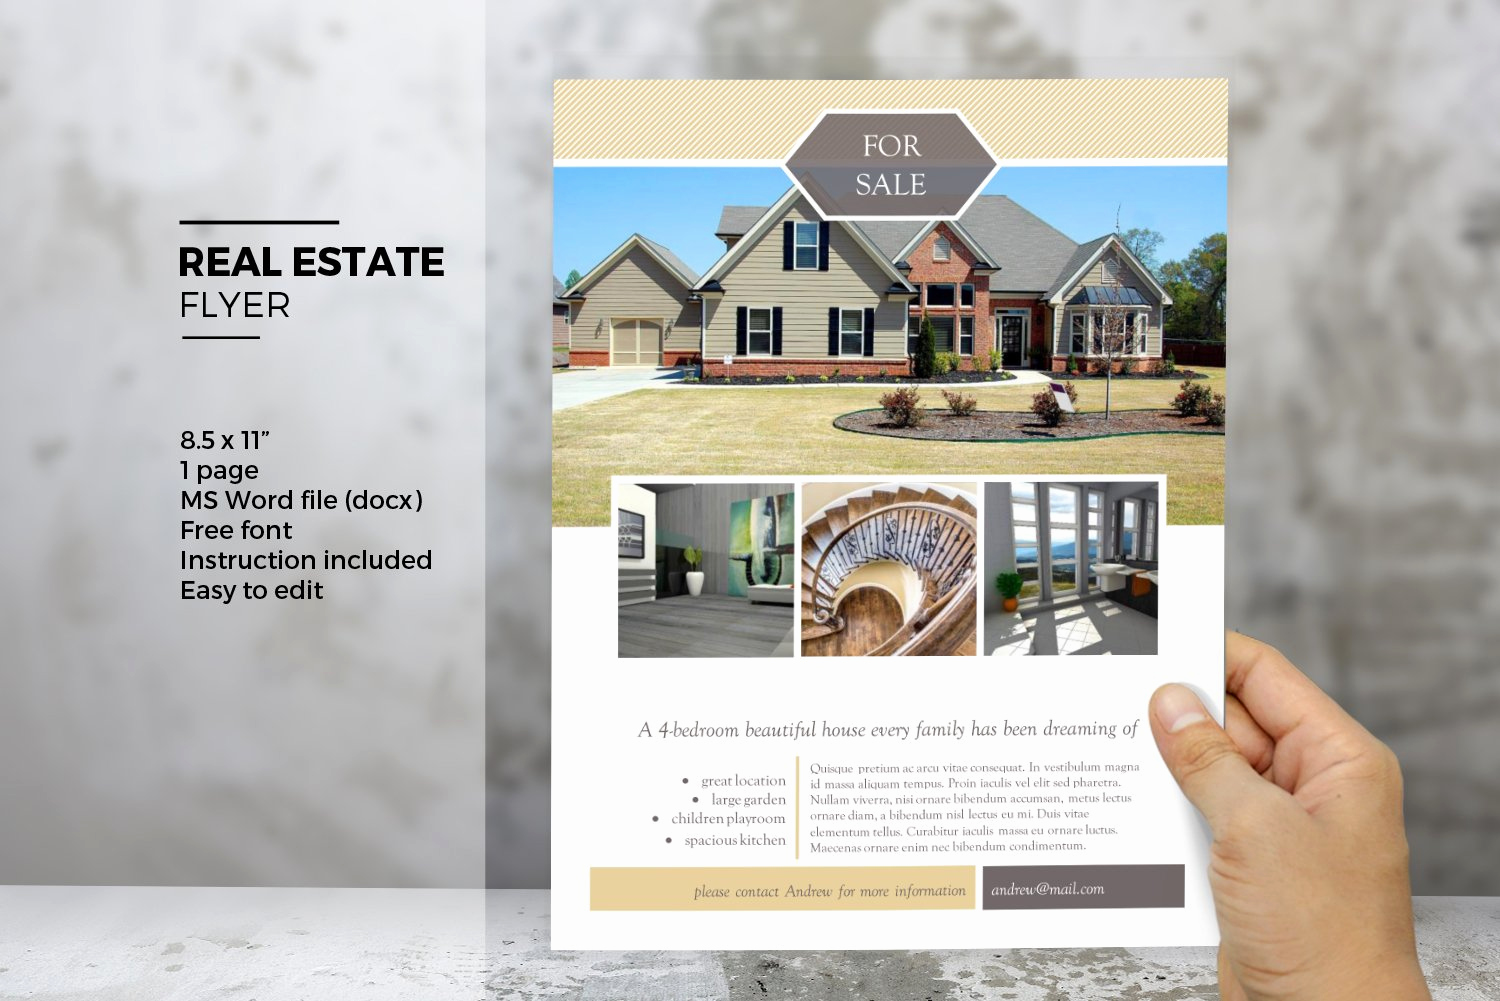 Real Estate Flyer Templates Elegant Ms Word Real Estate Flyer Template Flyer Templates